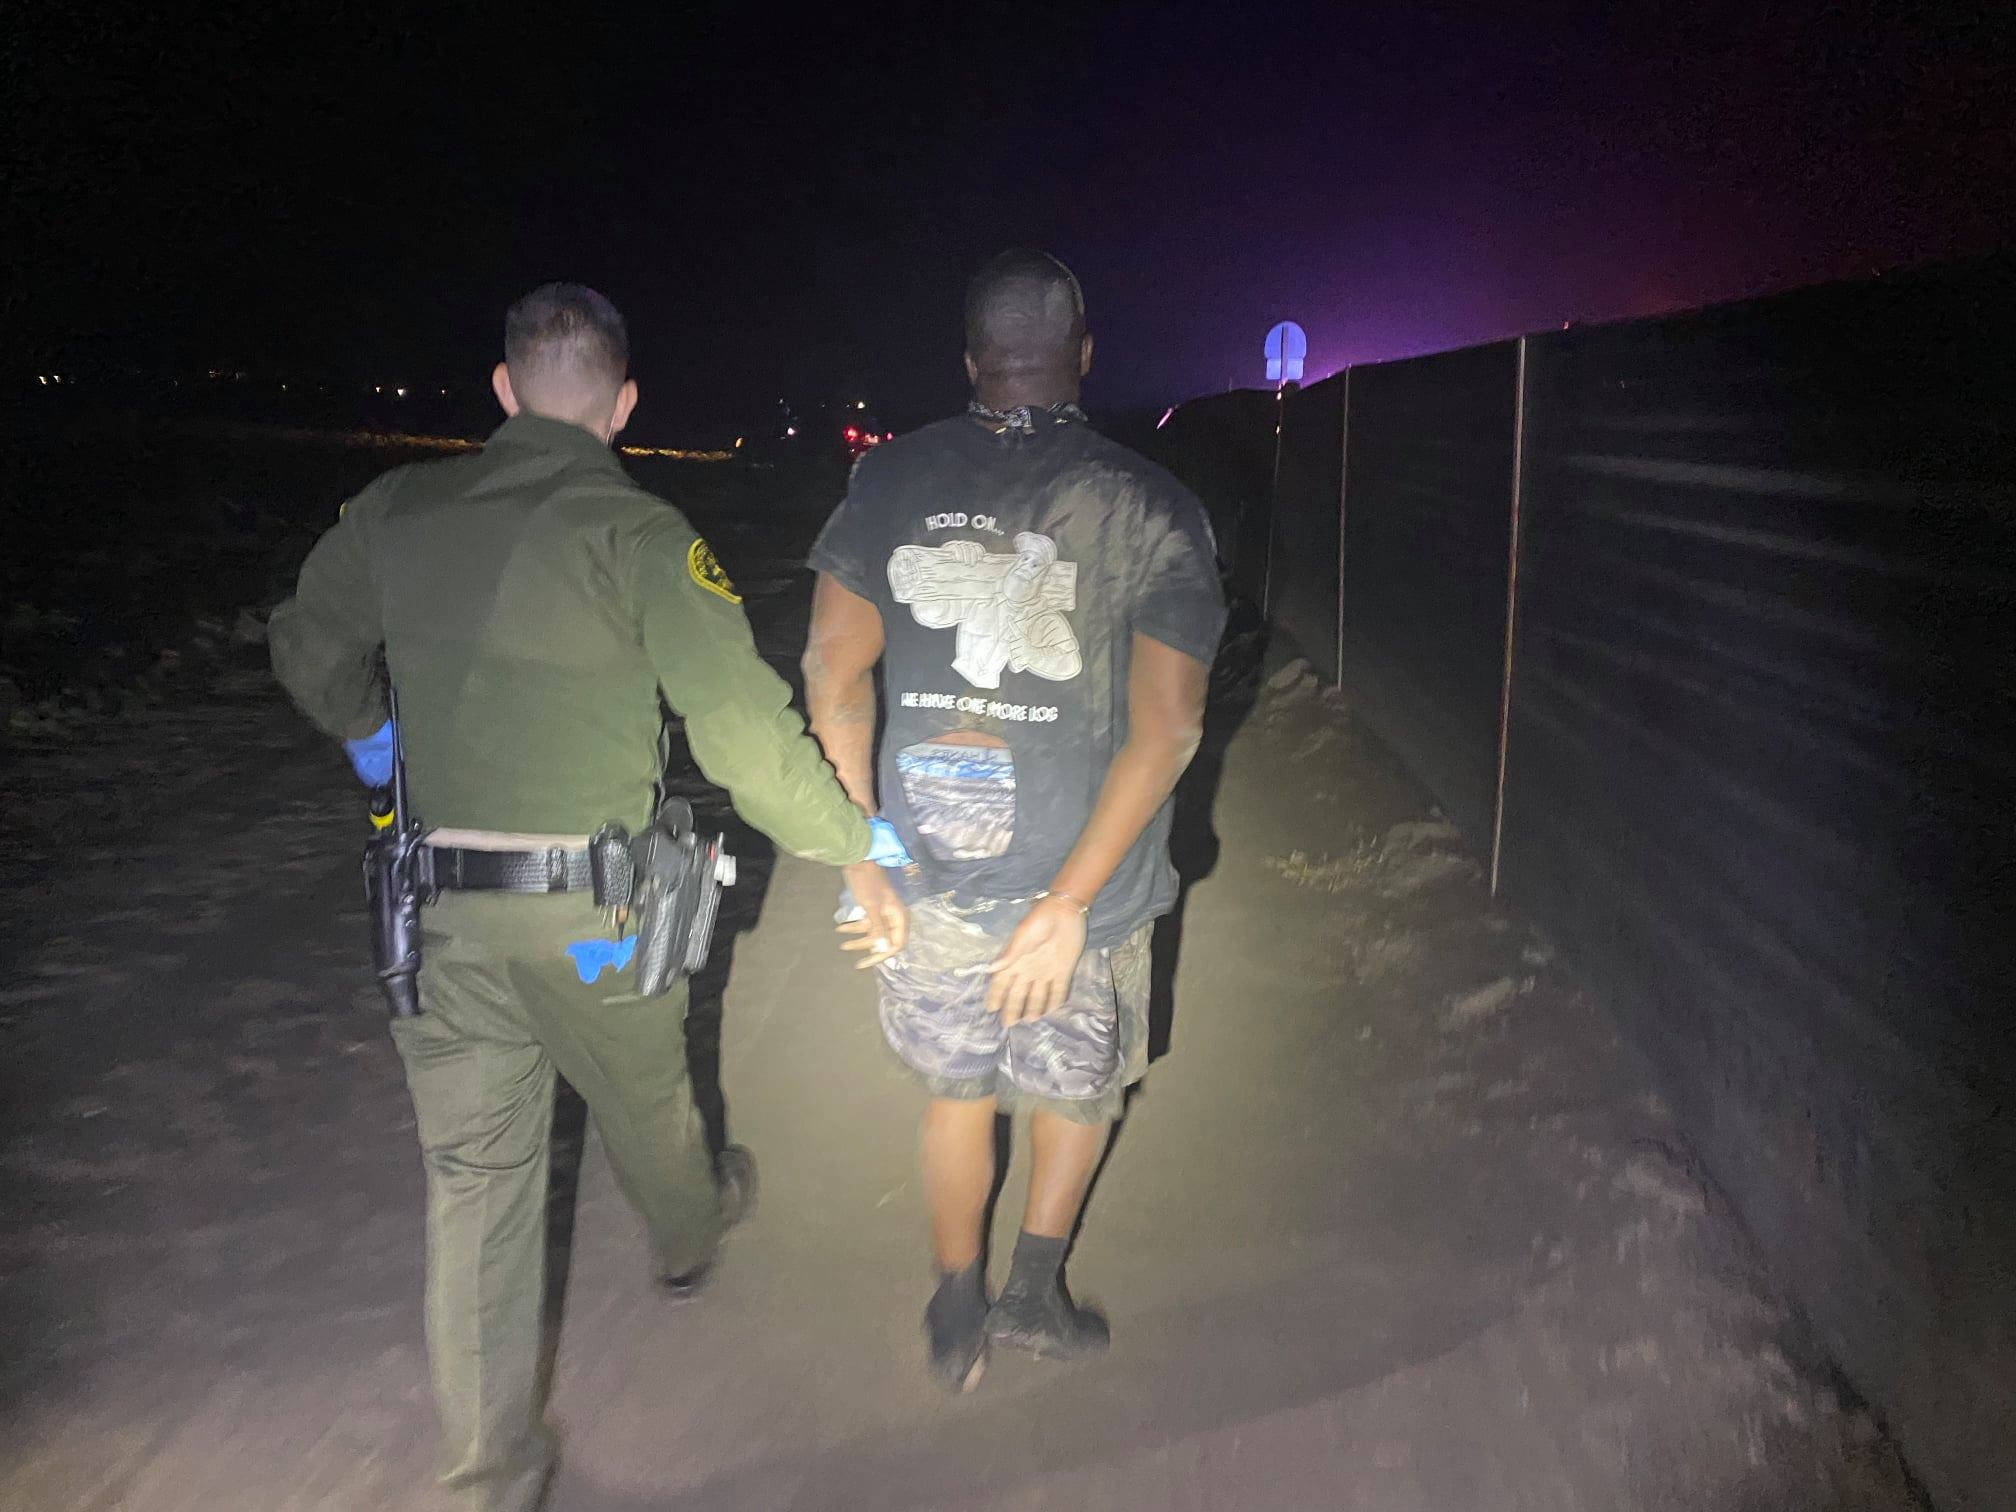 Monterey County Sheriff arrest suspect who stole car in Castroville